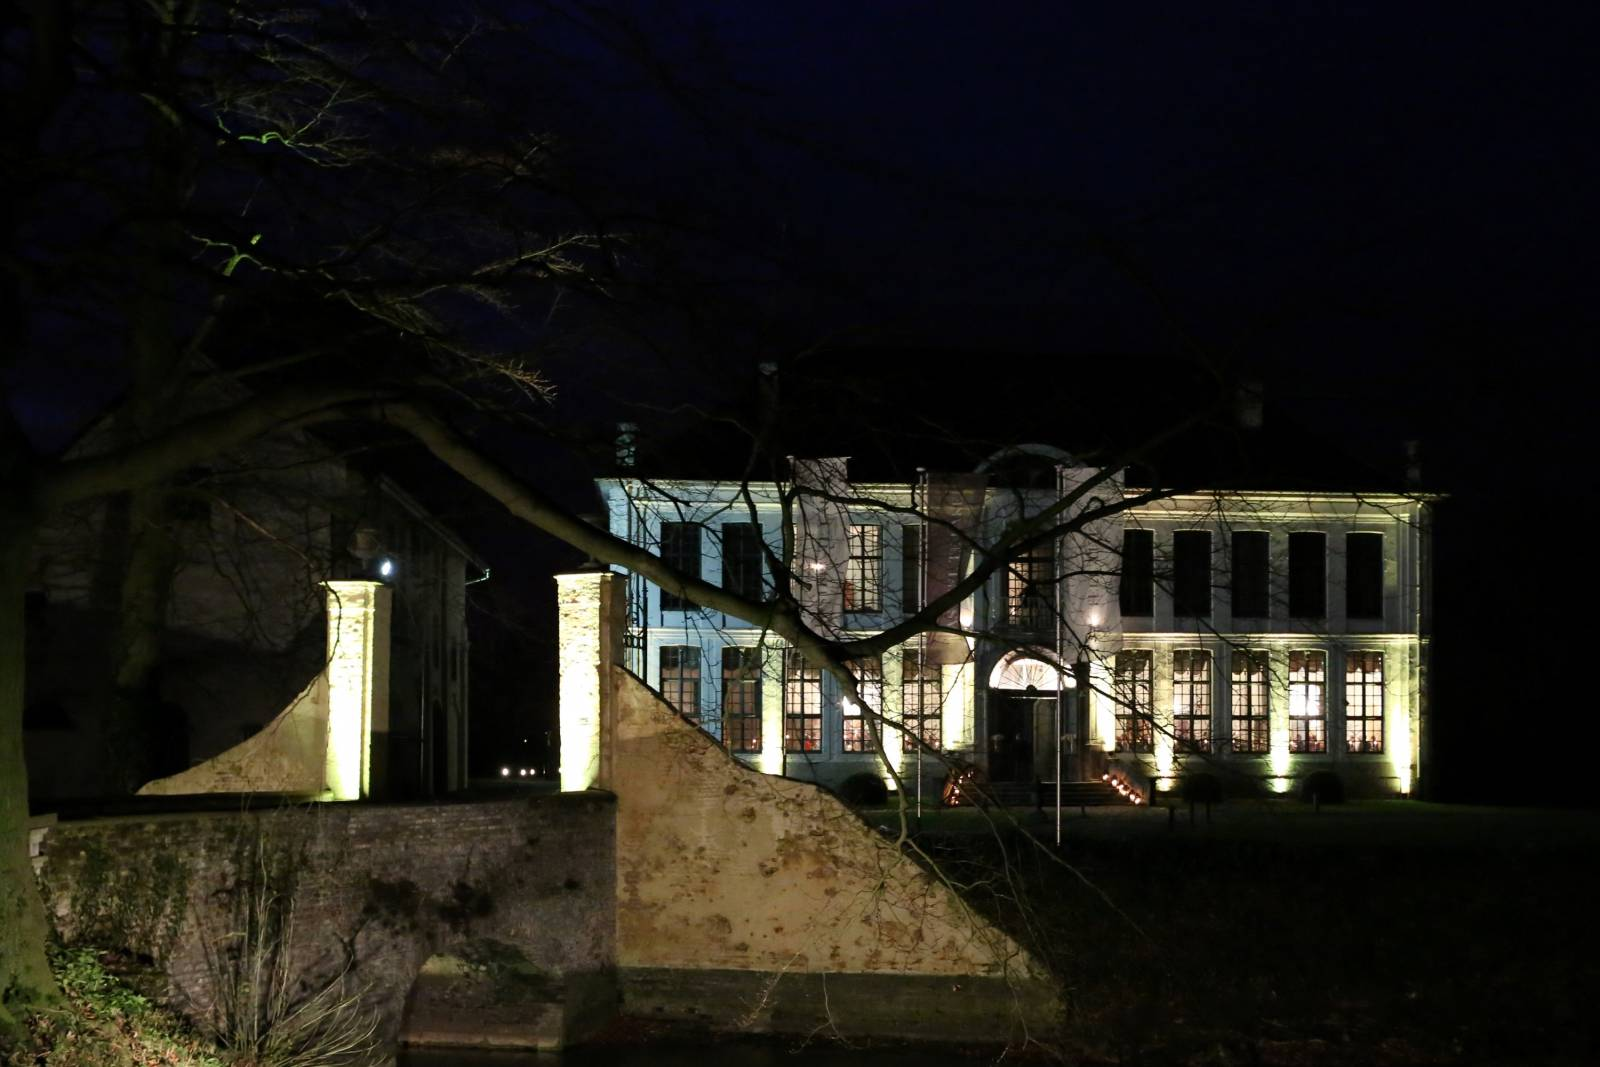 House of Weddings Kasteel Te Lake Feestzaal Oost-Vlaanderen Catering Ceremonie Zulte Gent (7)